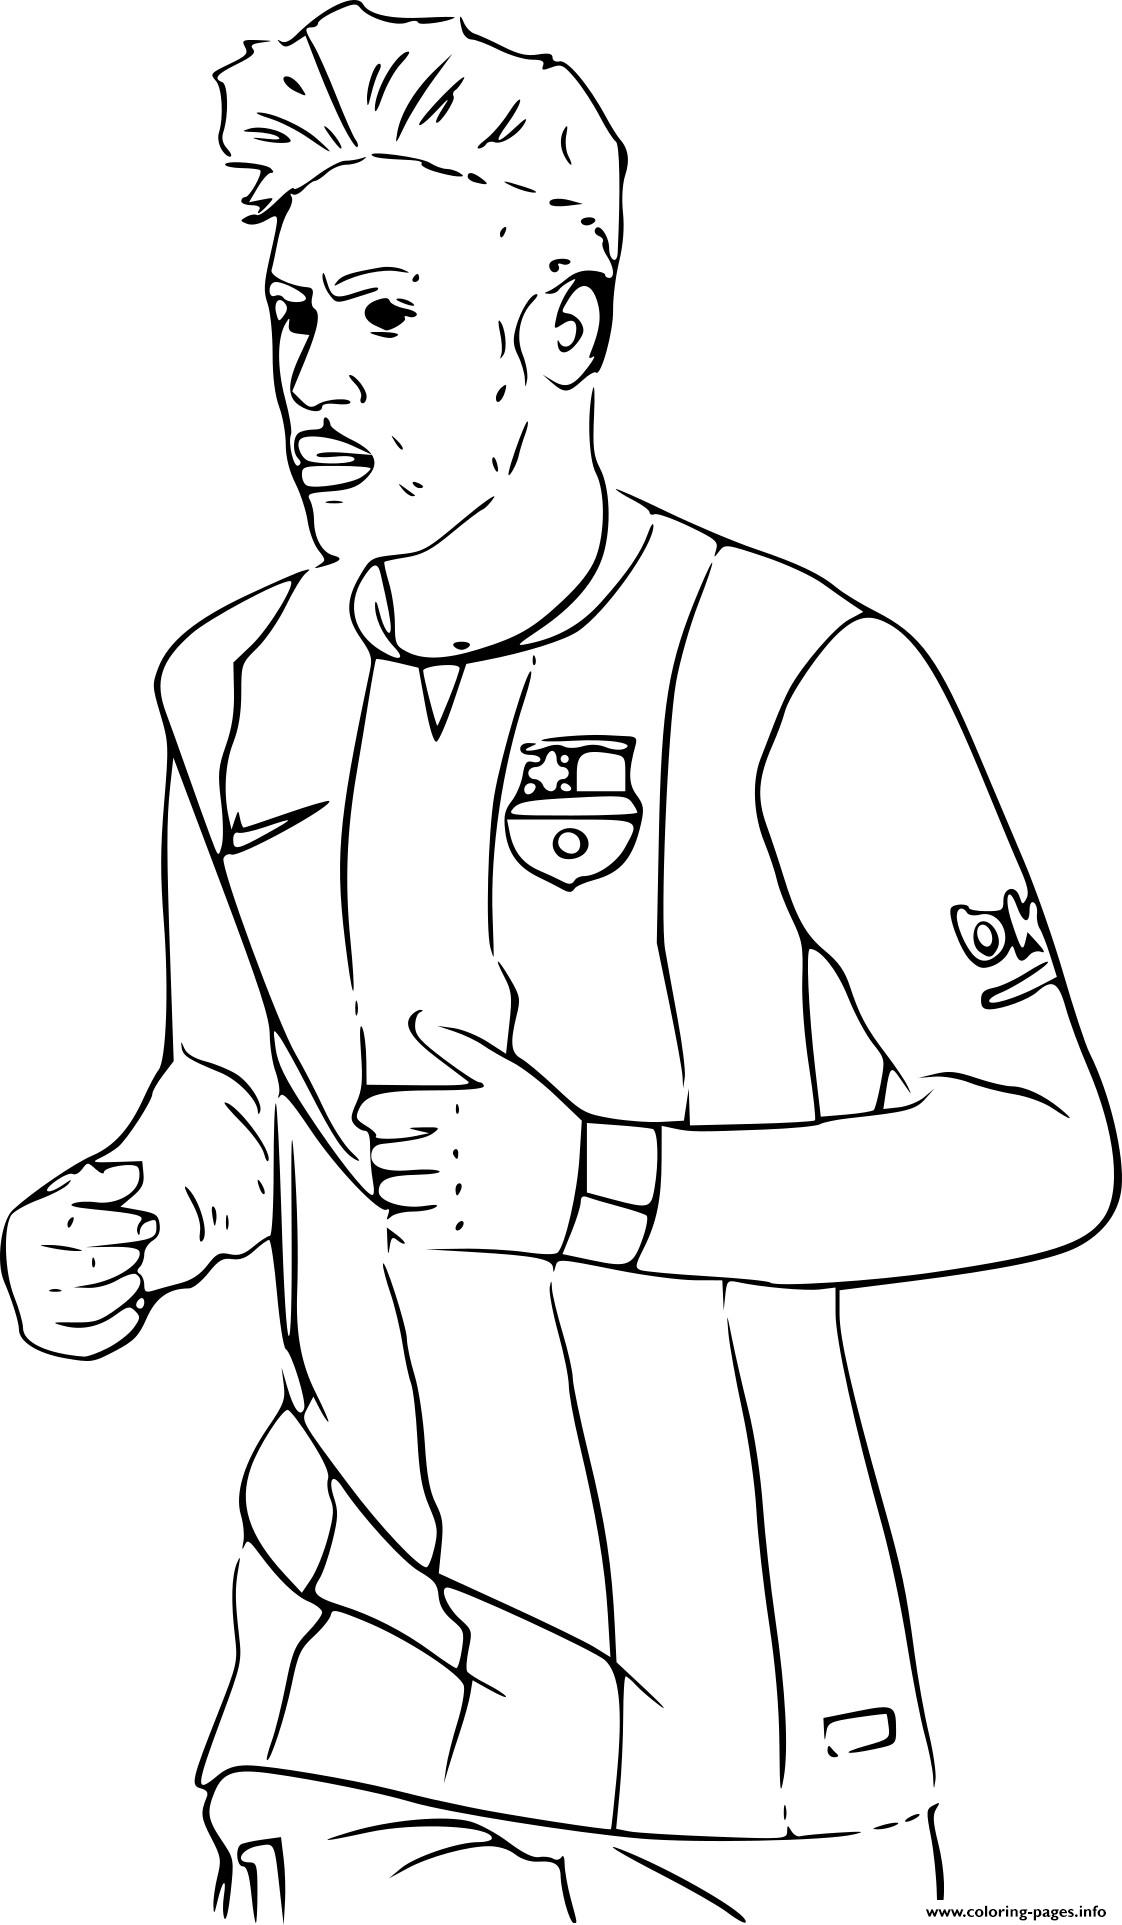 Messi Coloring Pages – Mcoloring | 1925x1122